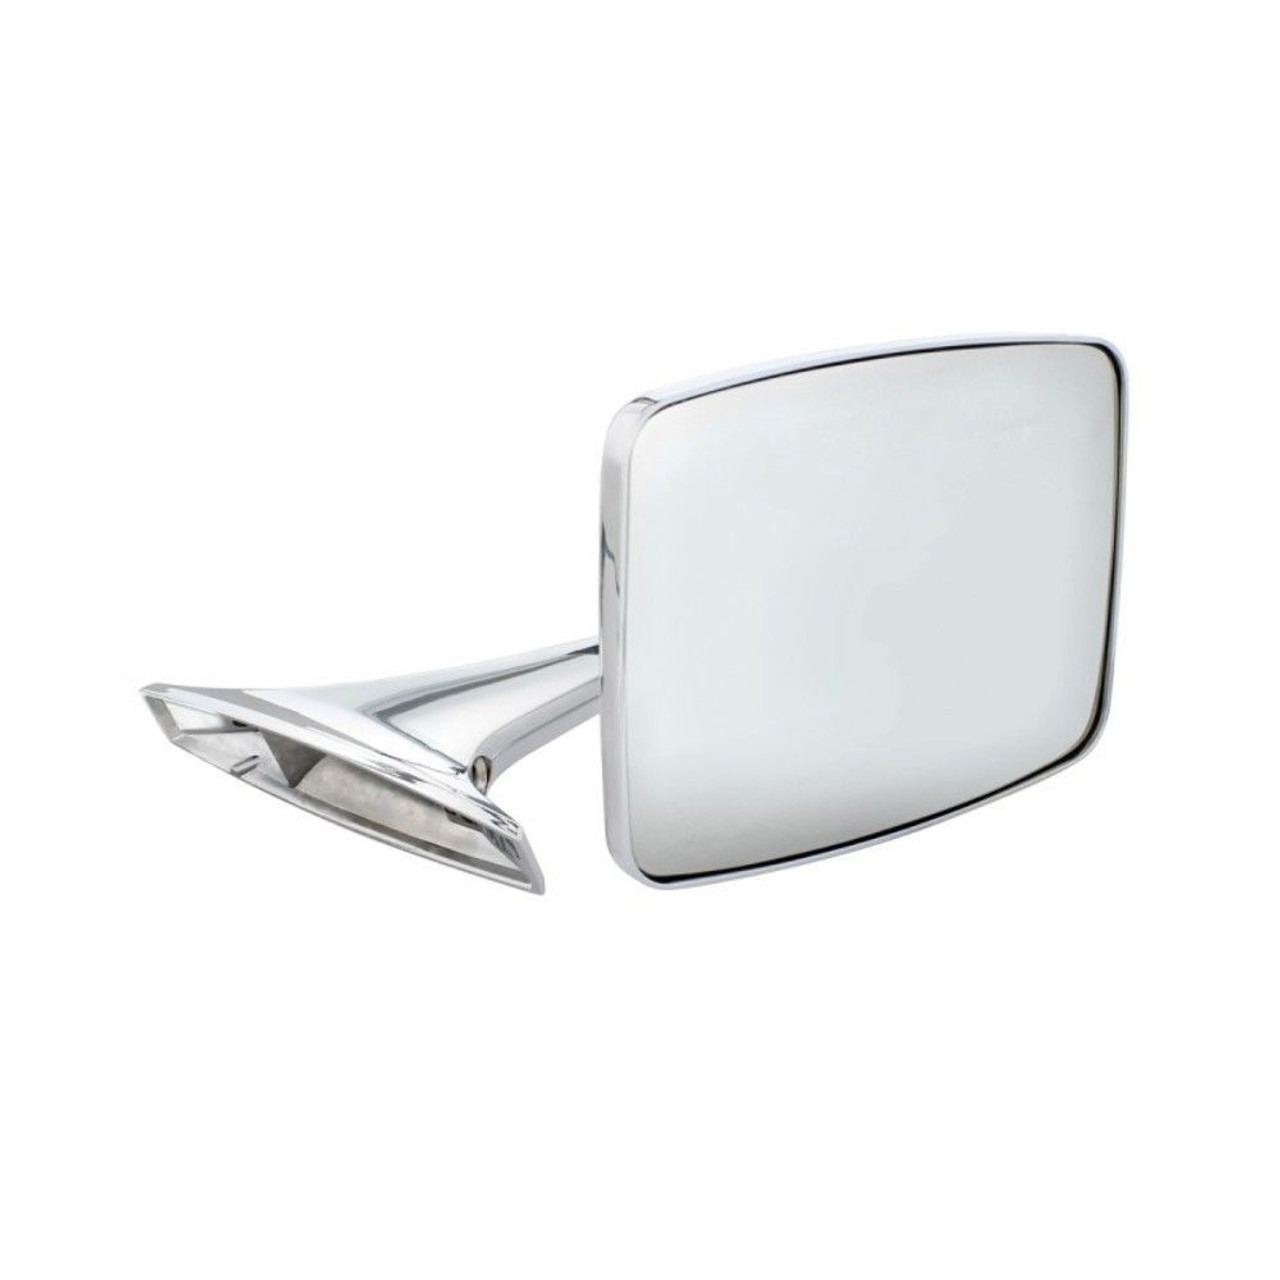 1973-87 Chevy & GMC Truck Exterior Mirror, Fits Left Hand Side & Right Hand Side